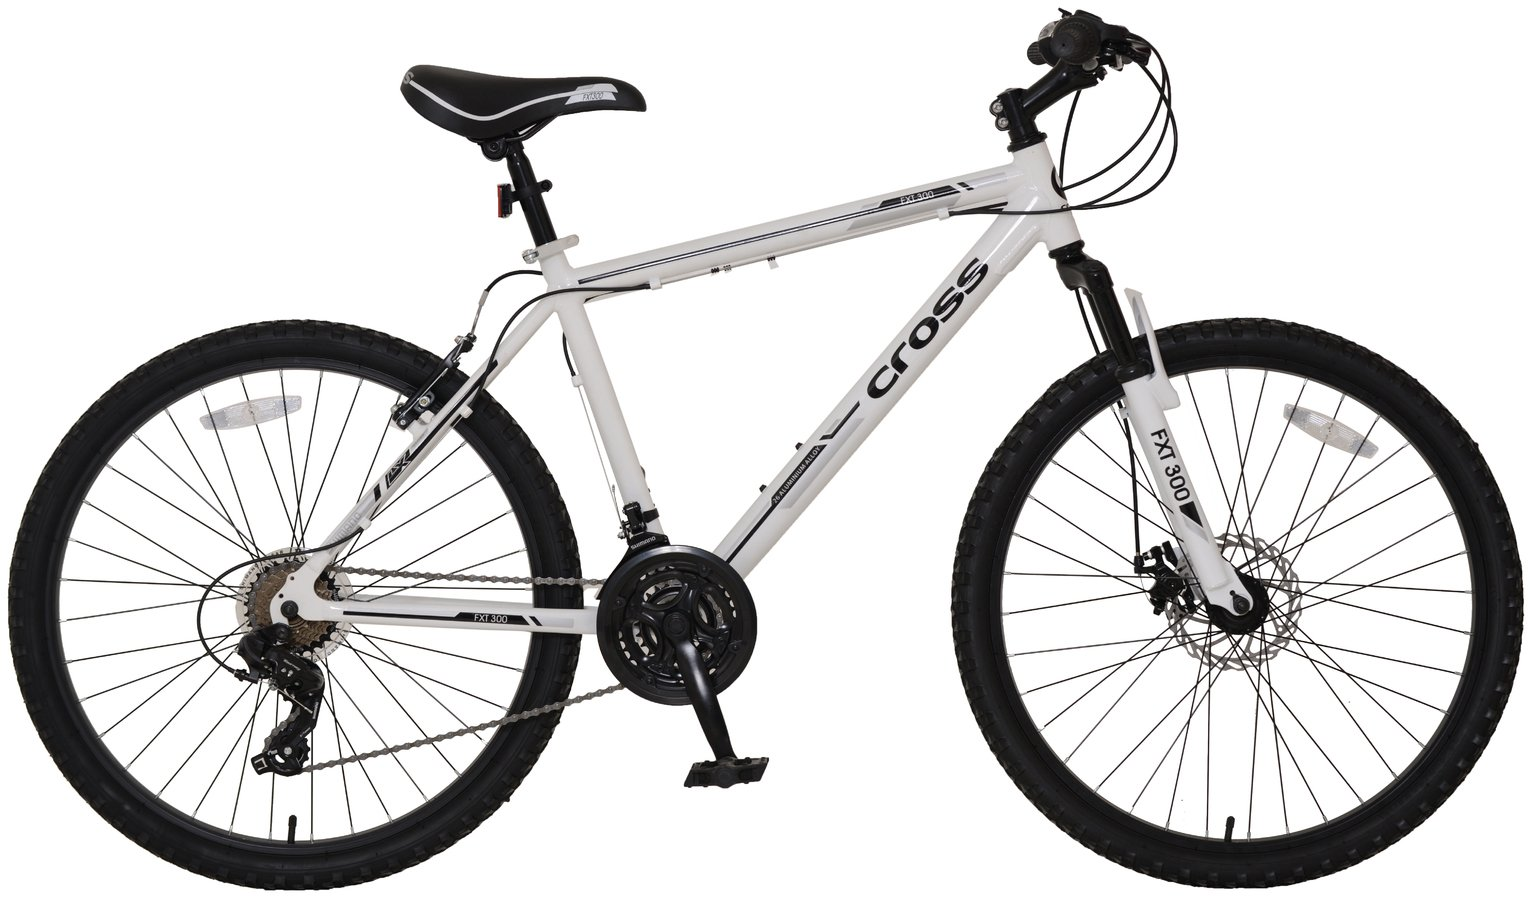 Image of Cross FXT30 Front Suspension Mountain 26 Inch Bike